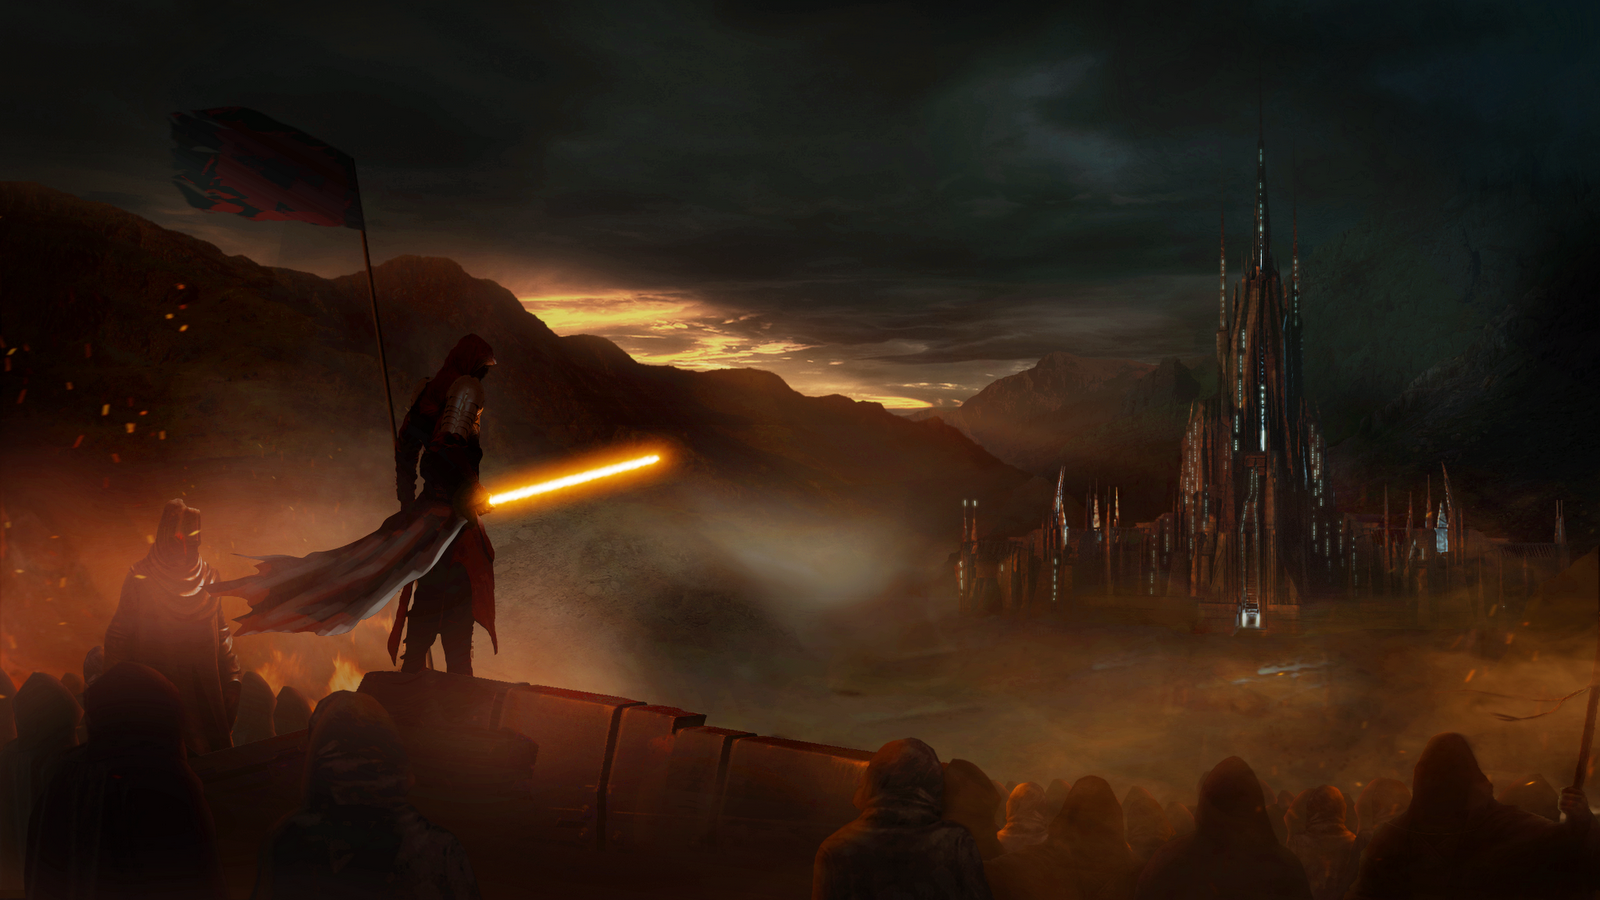 Coolest Star Wars Wallpaper Posted By Sarah Cunningham